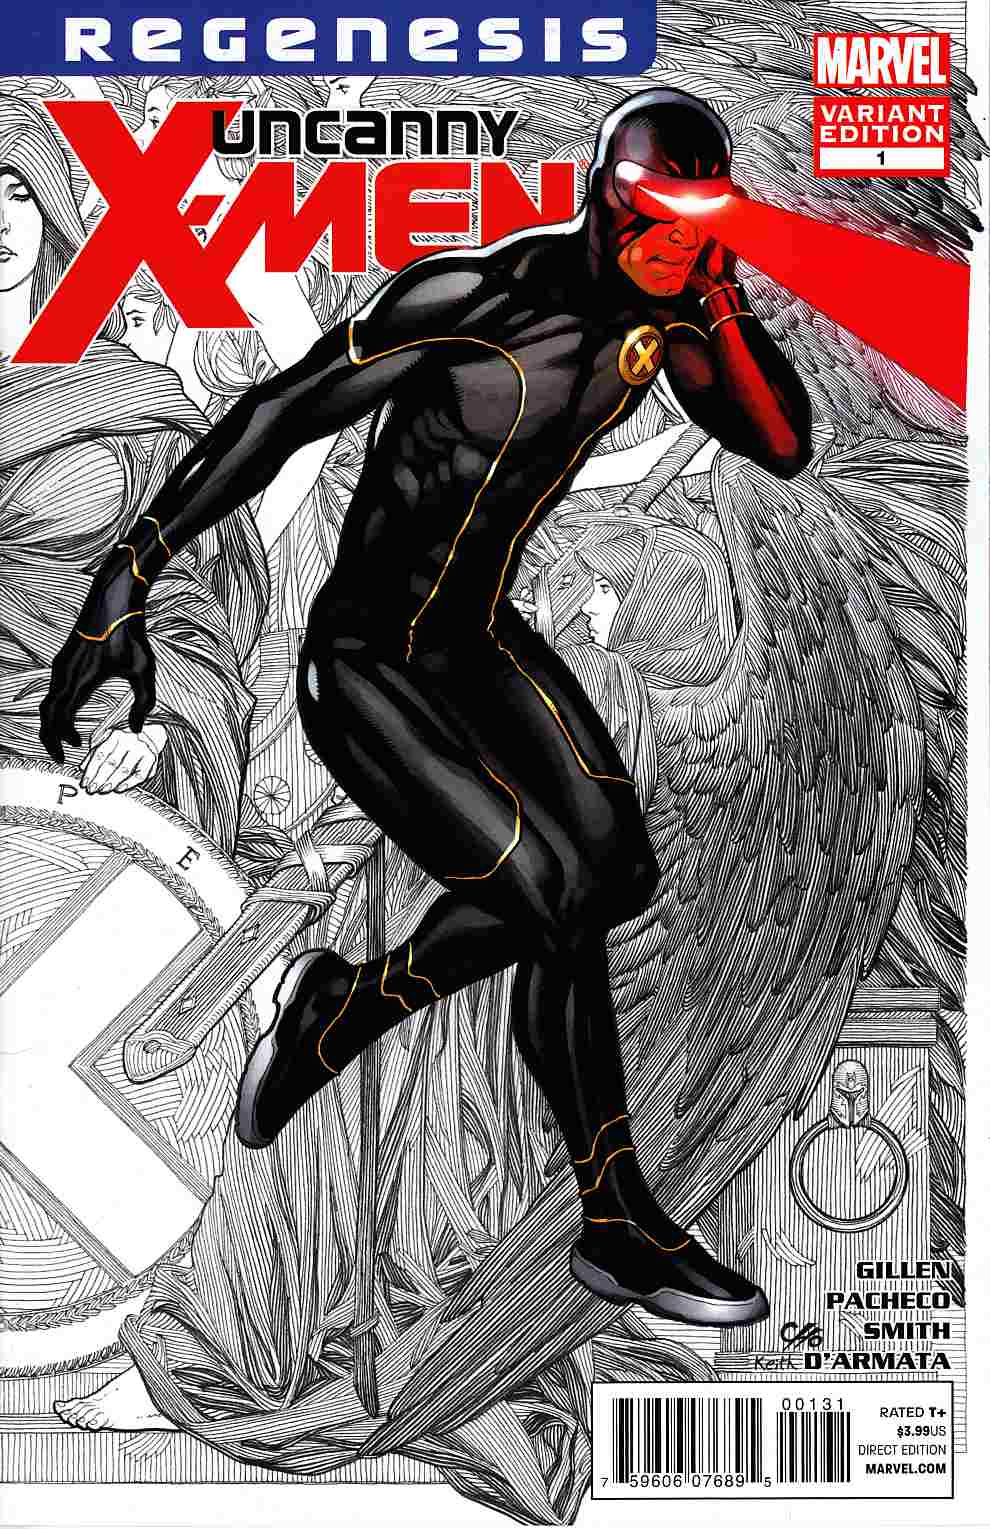 Uncanny X-Men #1 Cho Variant Cover Near Mint (9.4) [Marvel Comic] THUMBNAIL